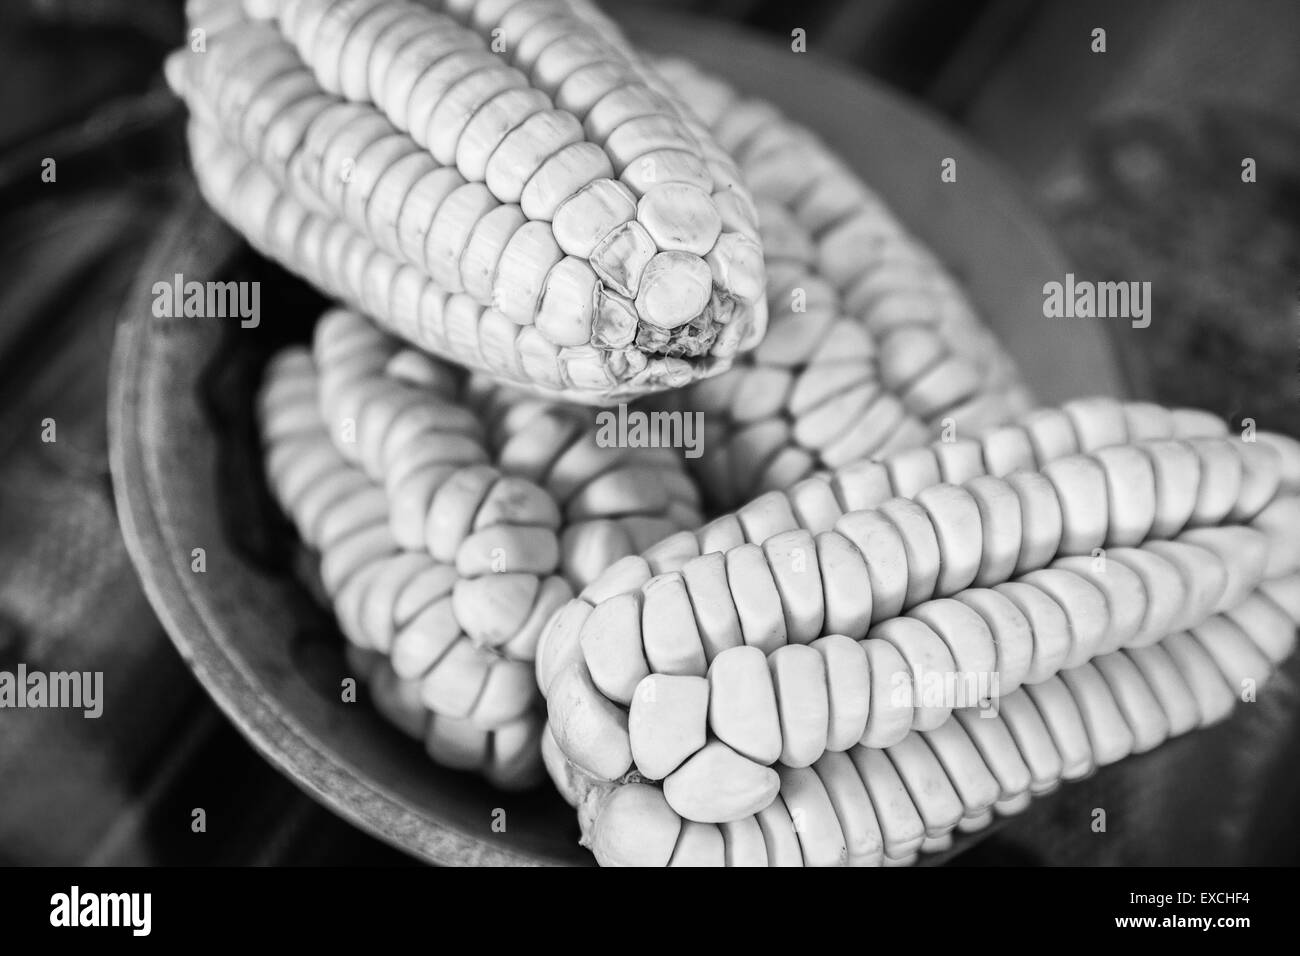 Four Corns in a Bowl, Peru, South America - Stock Image